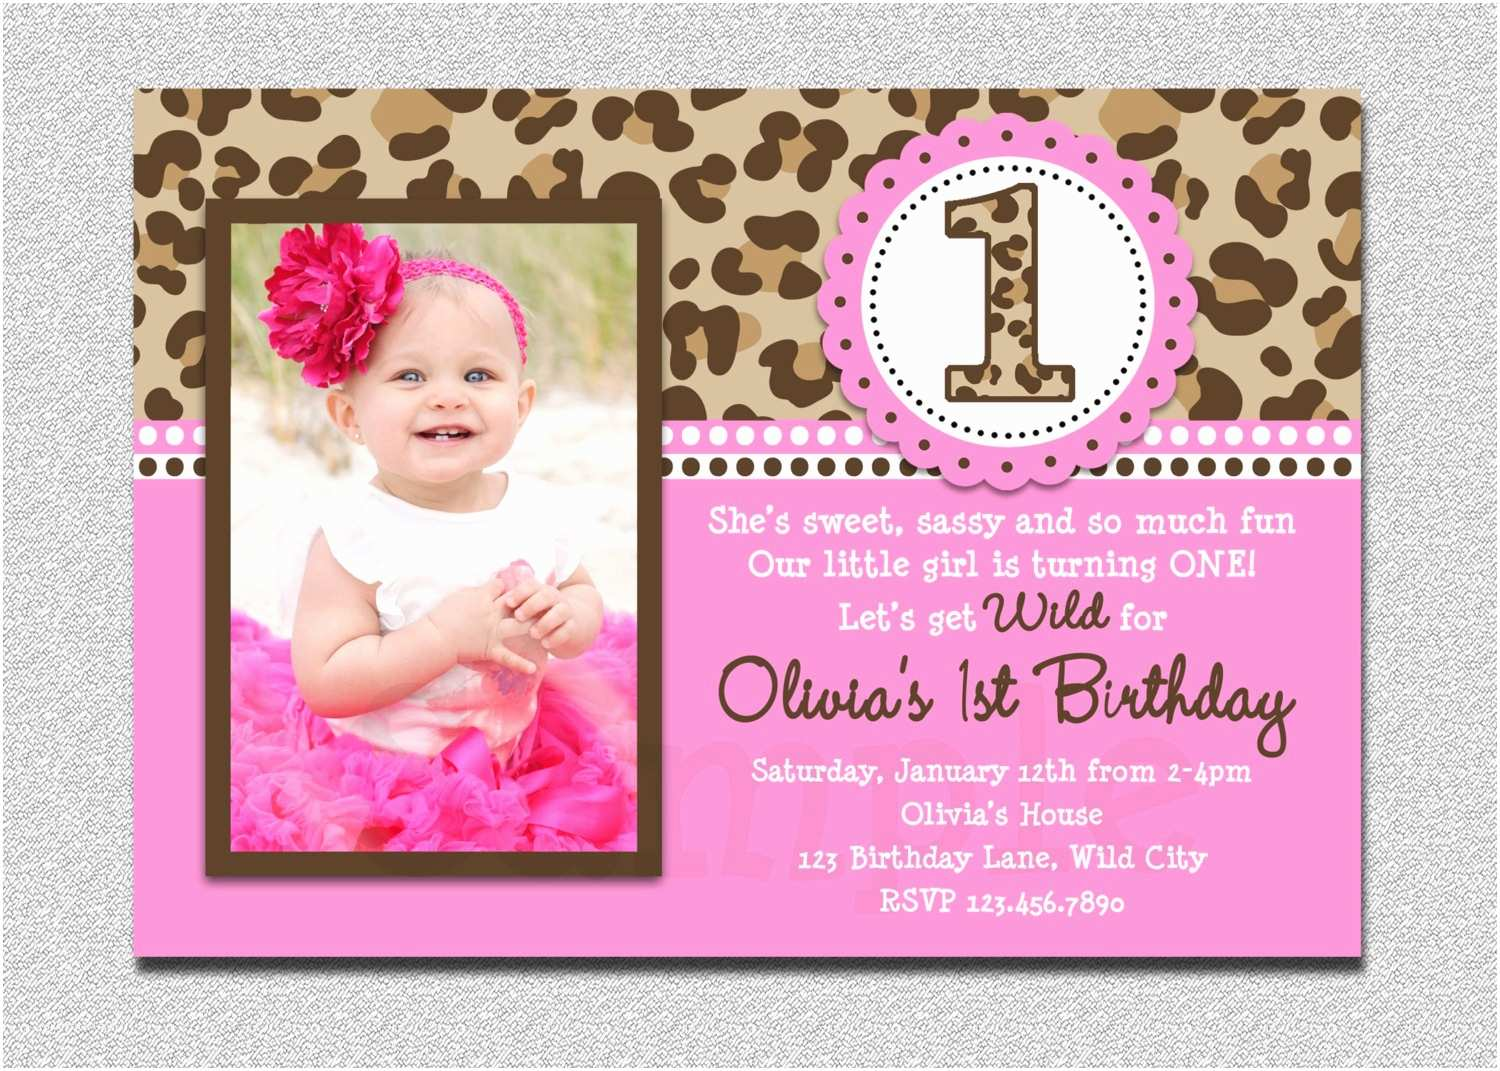 Walgreens Birthday Invitations the Walgreens Birthday Invitations Free Ideas